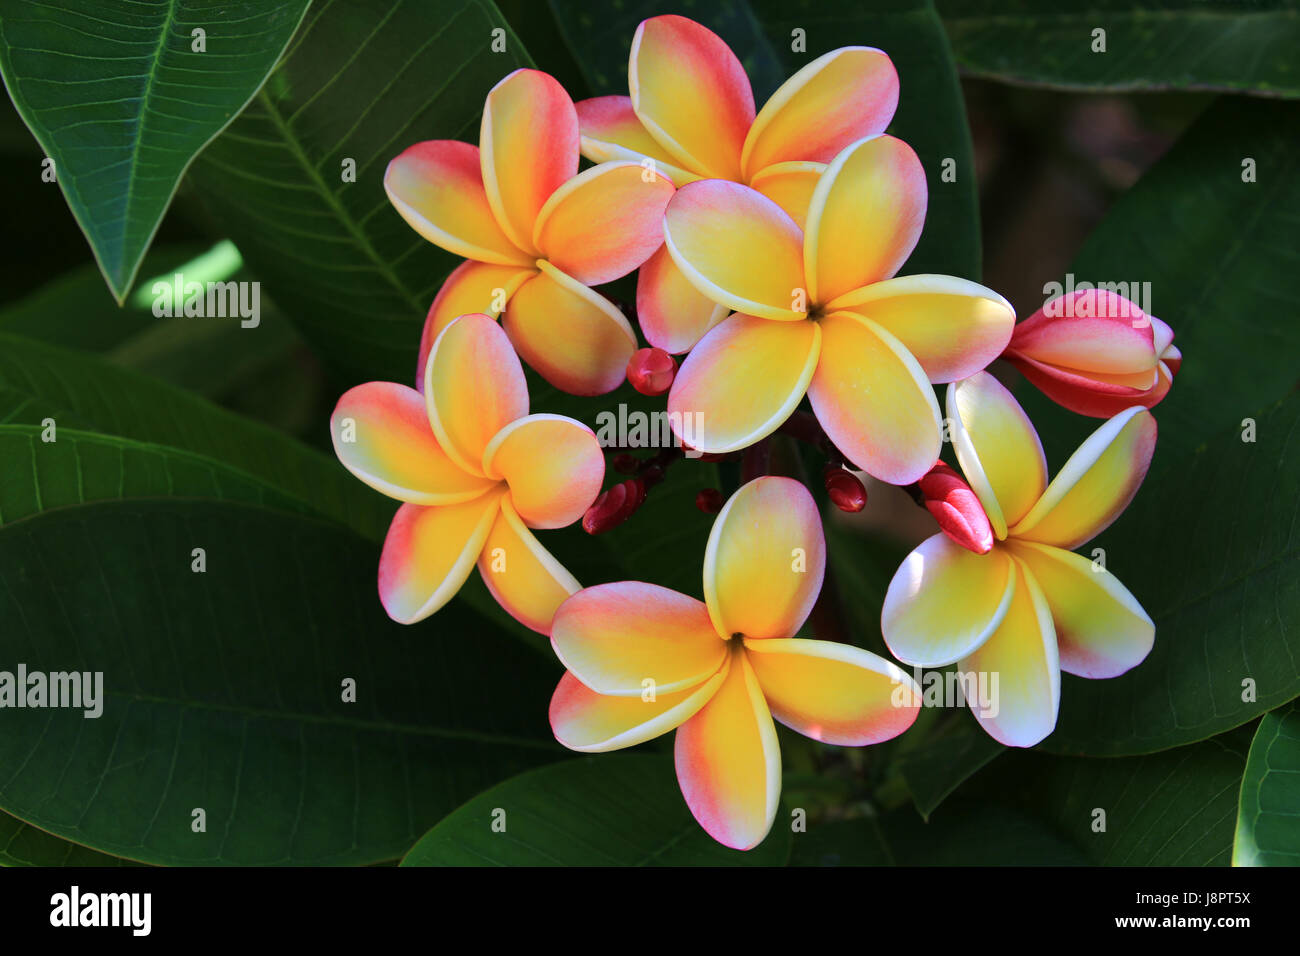 Lei rainbow plumeria flowers hawaii stock photo 143102118 alamy lei rainbow plumeria flowers hawaii izmirmasajfo